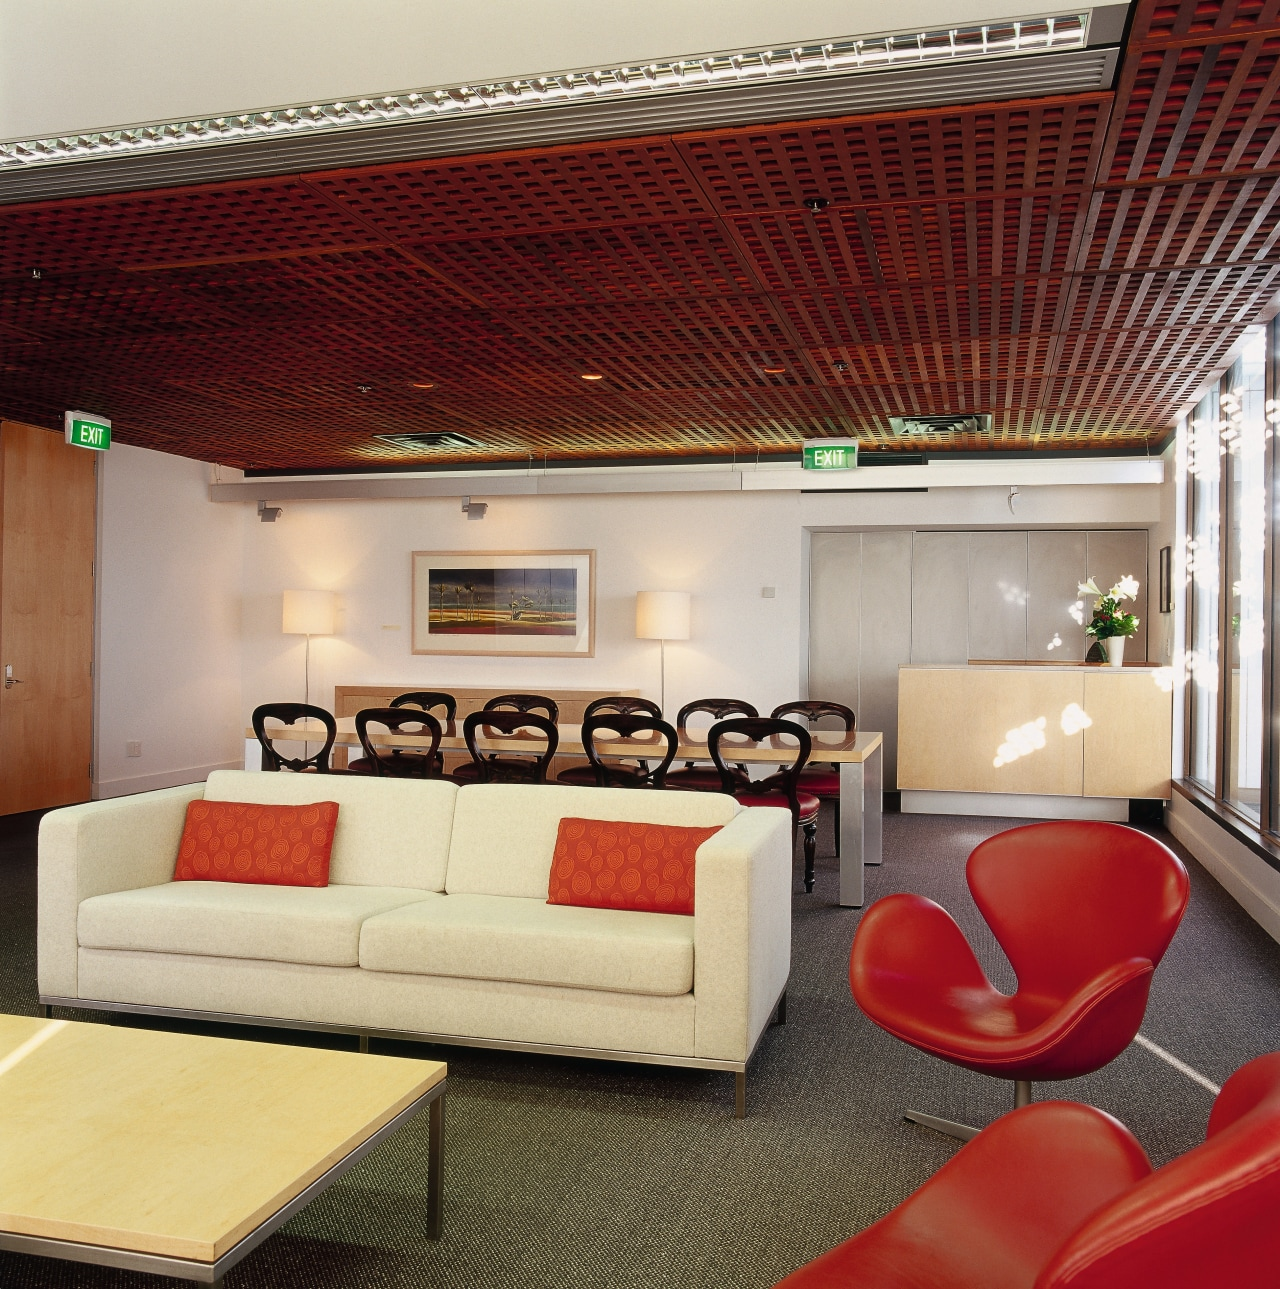 A view of the meeting area, carpet, wooden ceiling, furniture, interior design, living room, real estate, red, gray